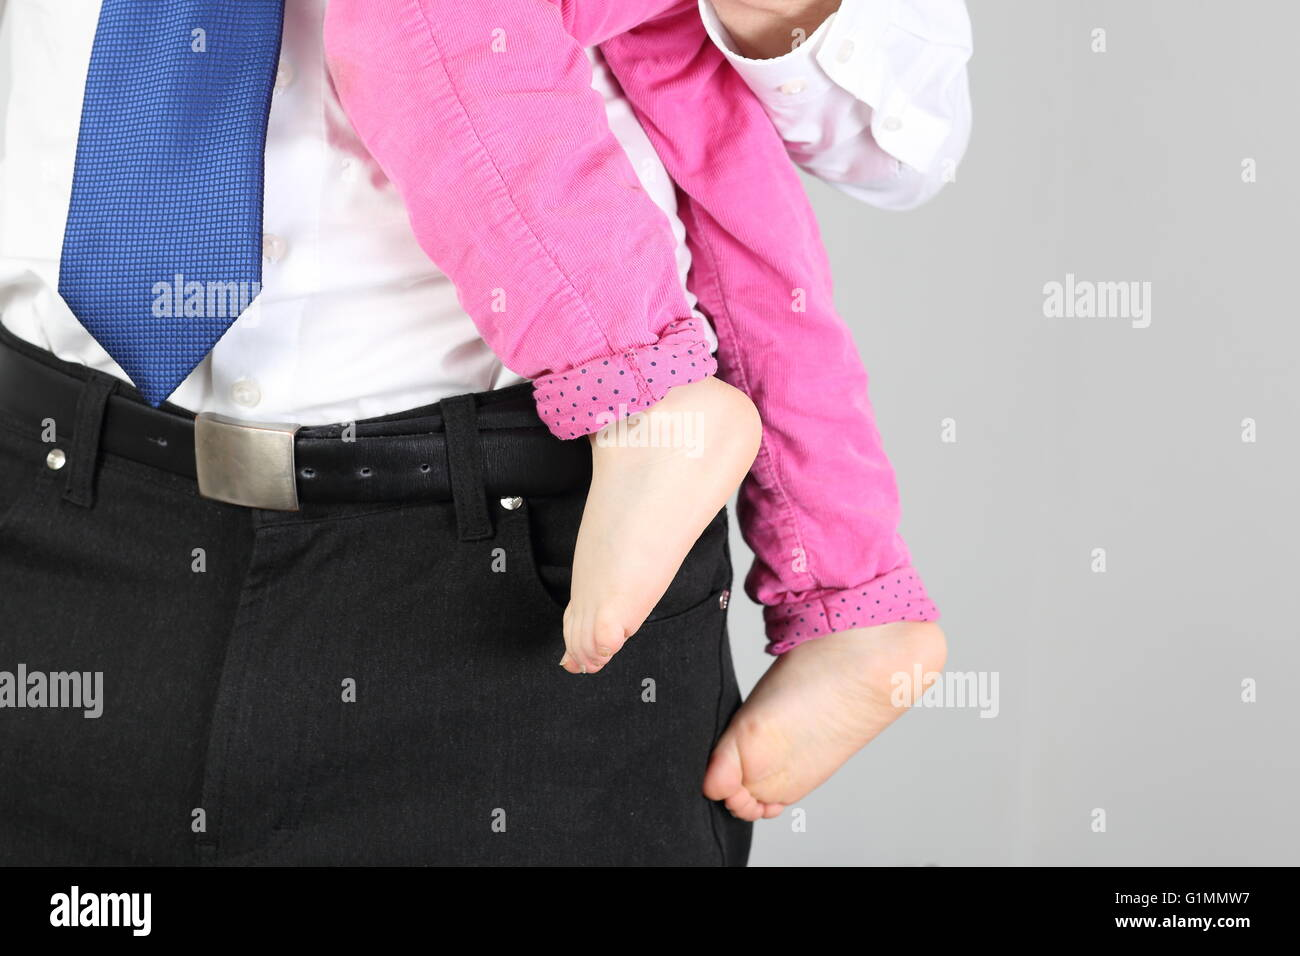 Businessman with child on arm - Stock Image